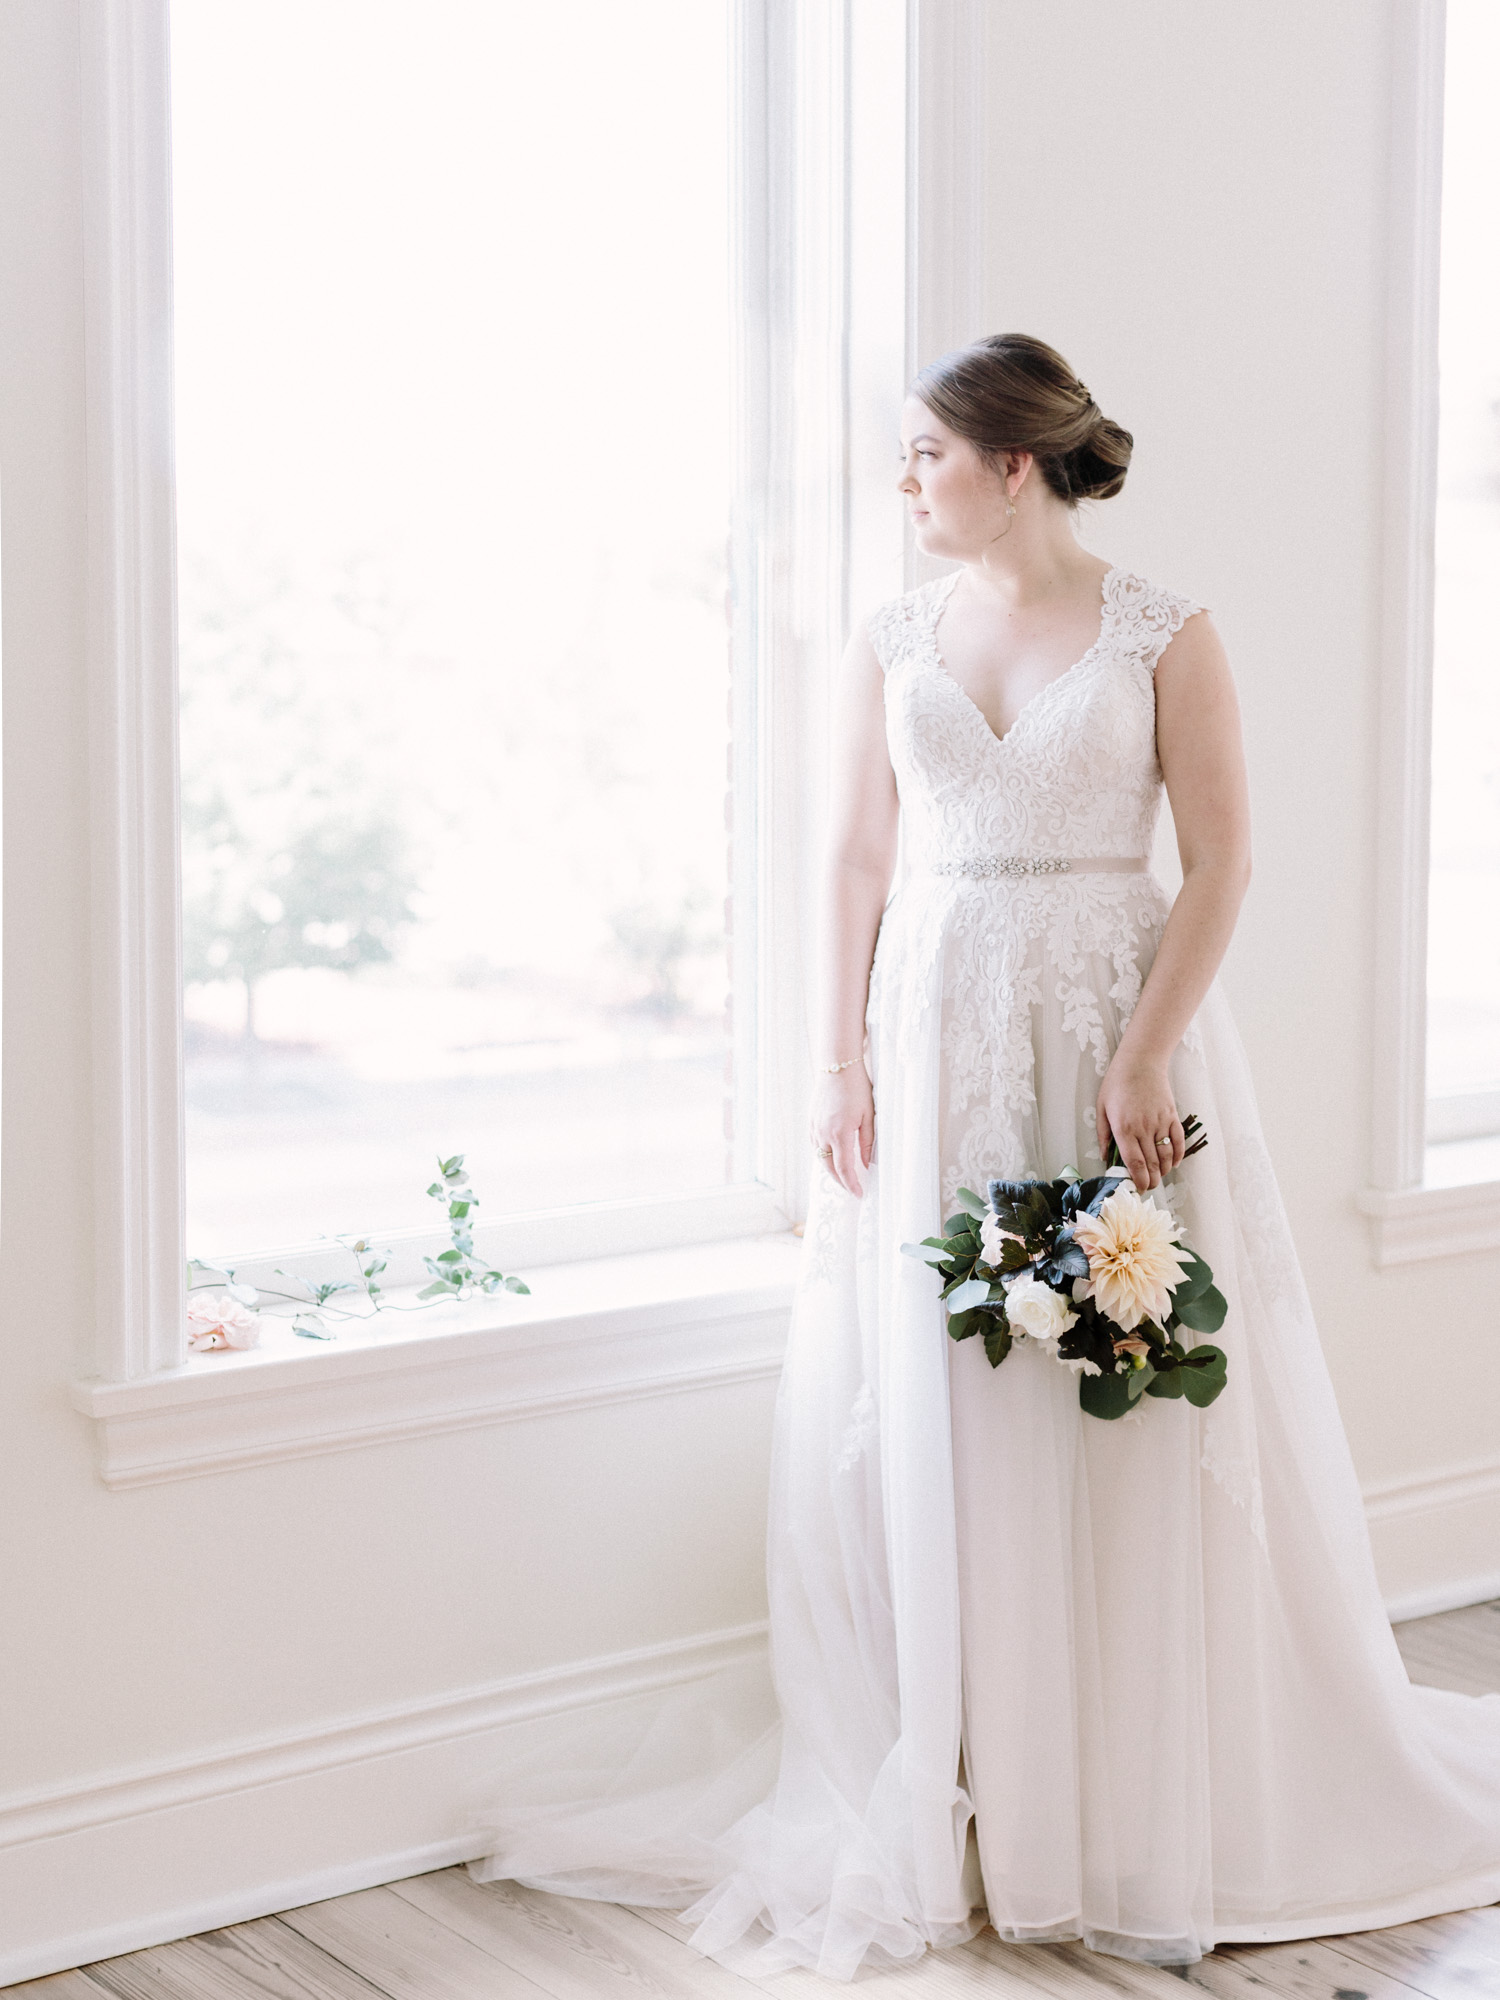 A bride gazes out the window with her bouquet in downtown Kalamazoo